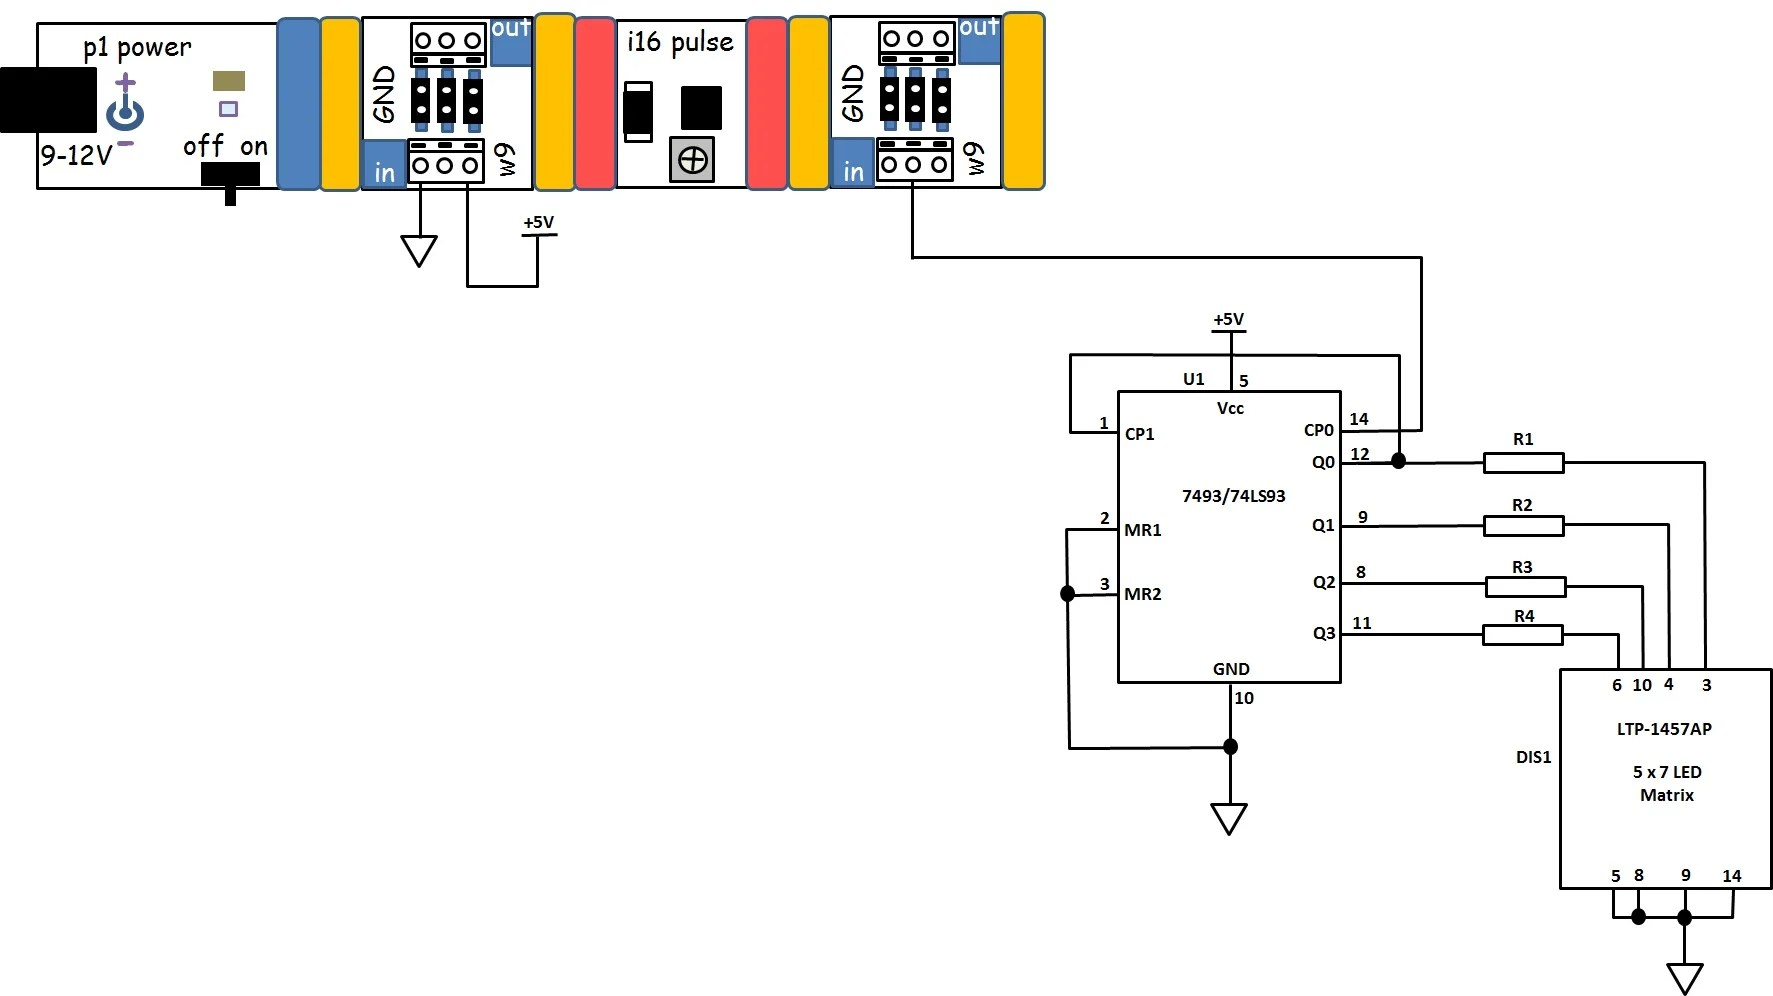 hight resolution of figure 16 the circuit schematic diagram for the 4 bit binary counter with 5x7 led matrix display